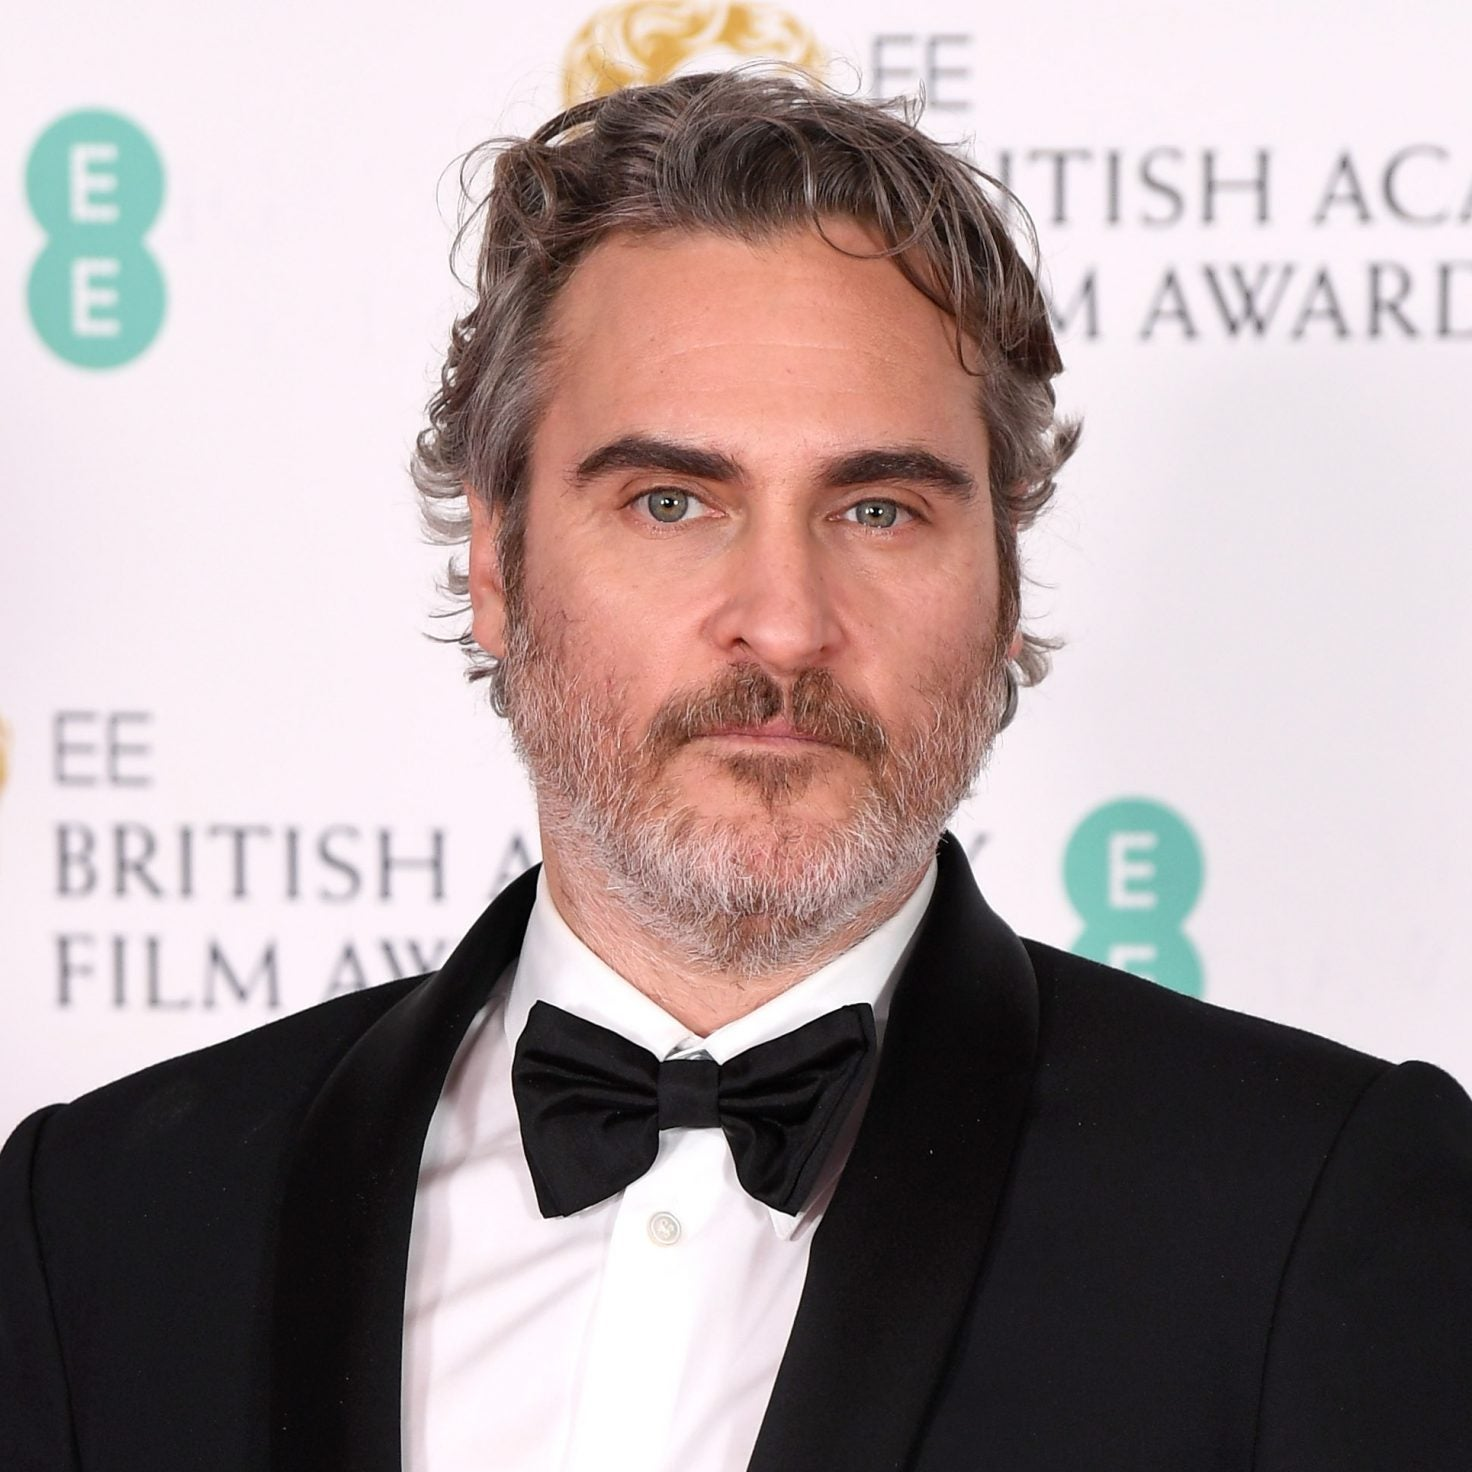 Joaquin Phoenix Condemns BAFTA Awards During Acceptance Speech After Total Lack Of Diversity In Nominees